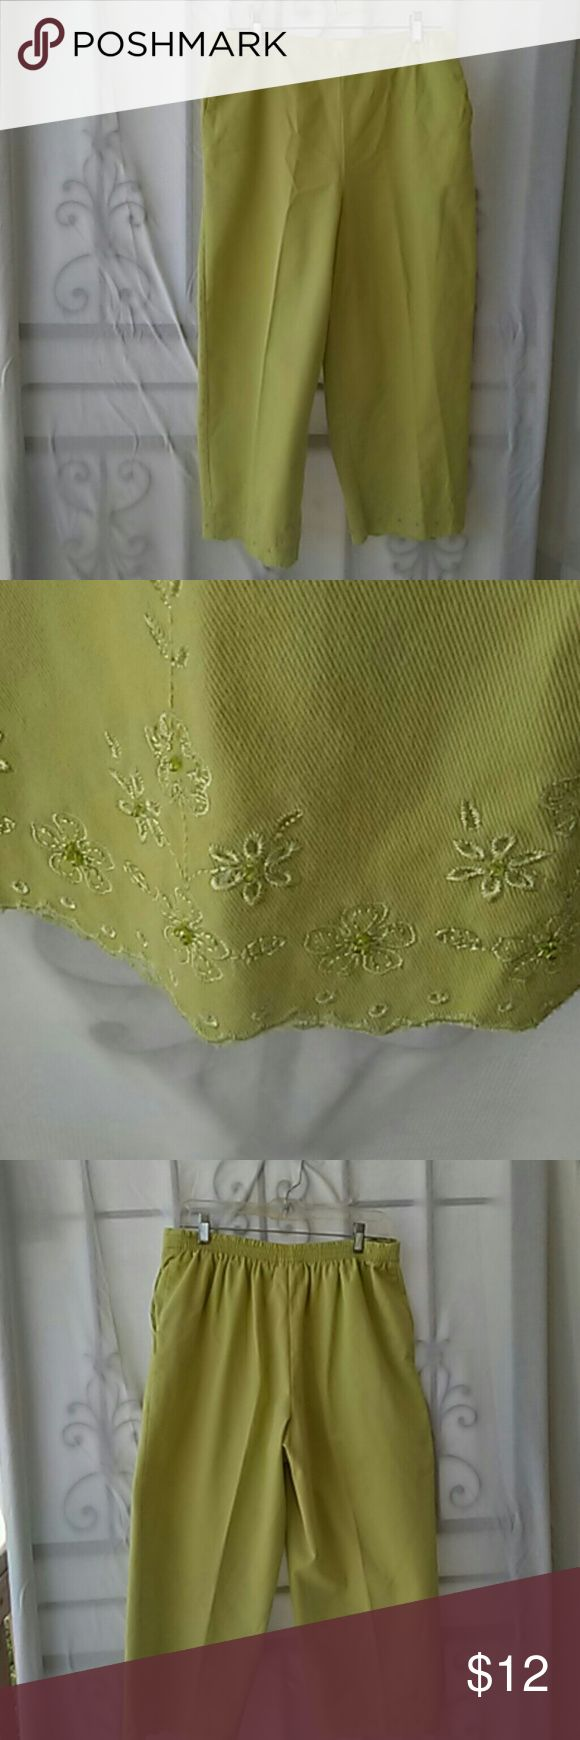 Capri pants lime green size 12 These pants have an elastic waist inside pockets worn once excellent condition. These capris match the fresh produce top I just listed. I try to ship same day if not next day. Alfred Dunner Pants Capris